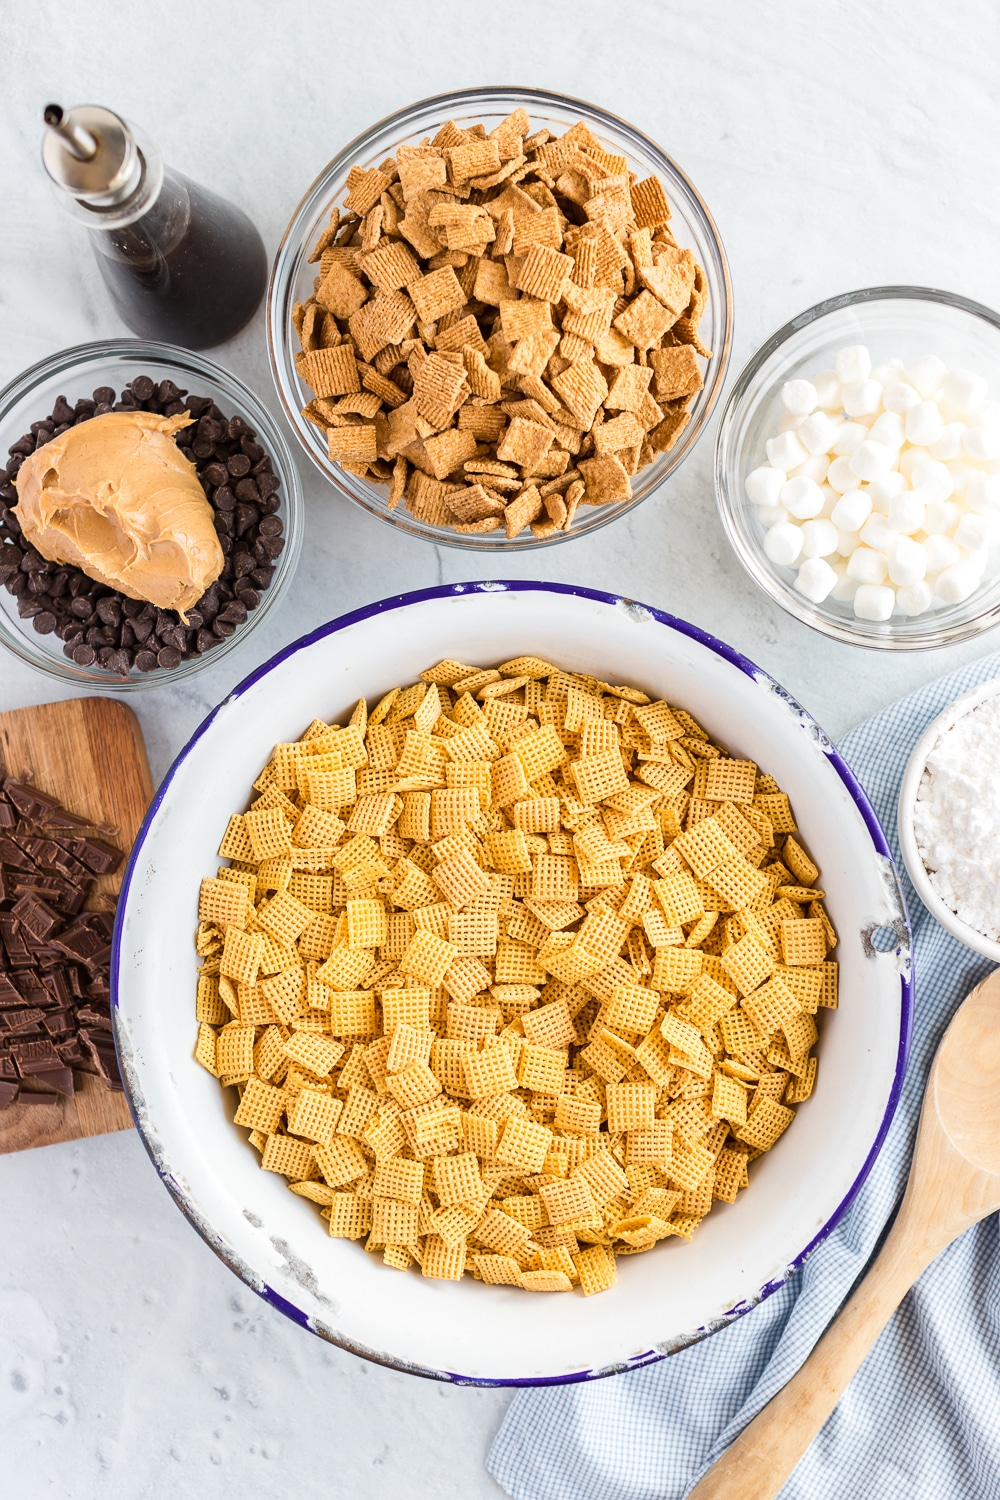 S'mores Puppy Chow Ingredients